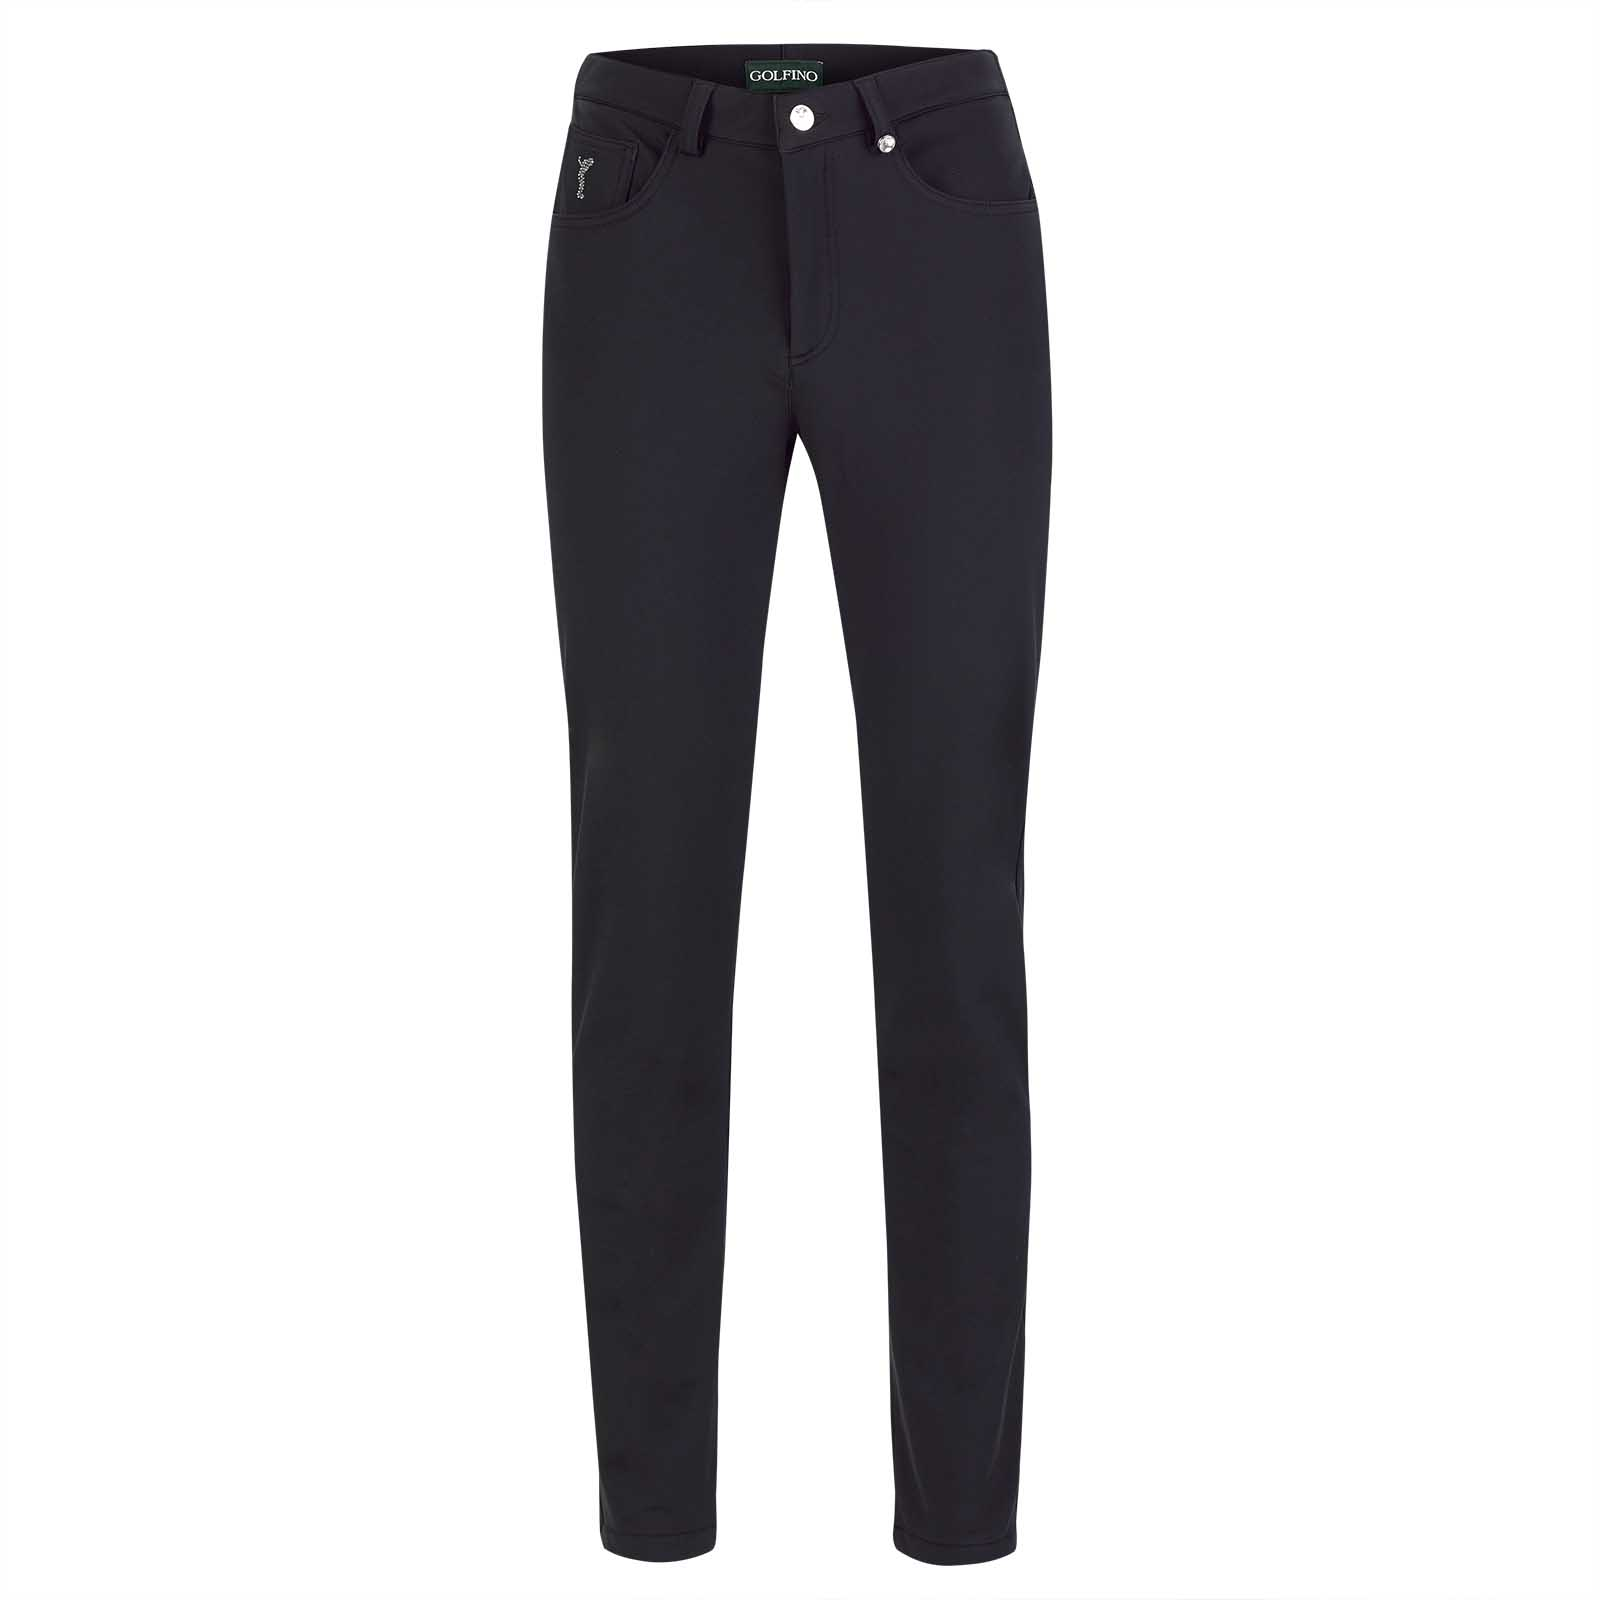 Extra Soft 5-pocket ladies' slim fit golf trousers in 4-way stretch